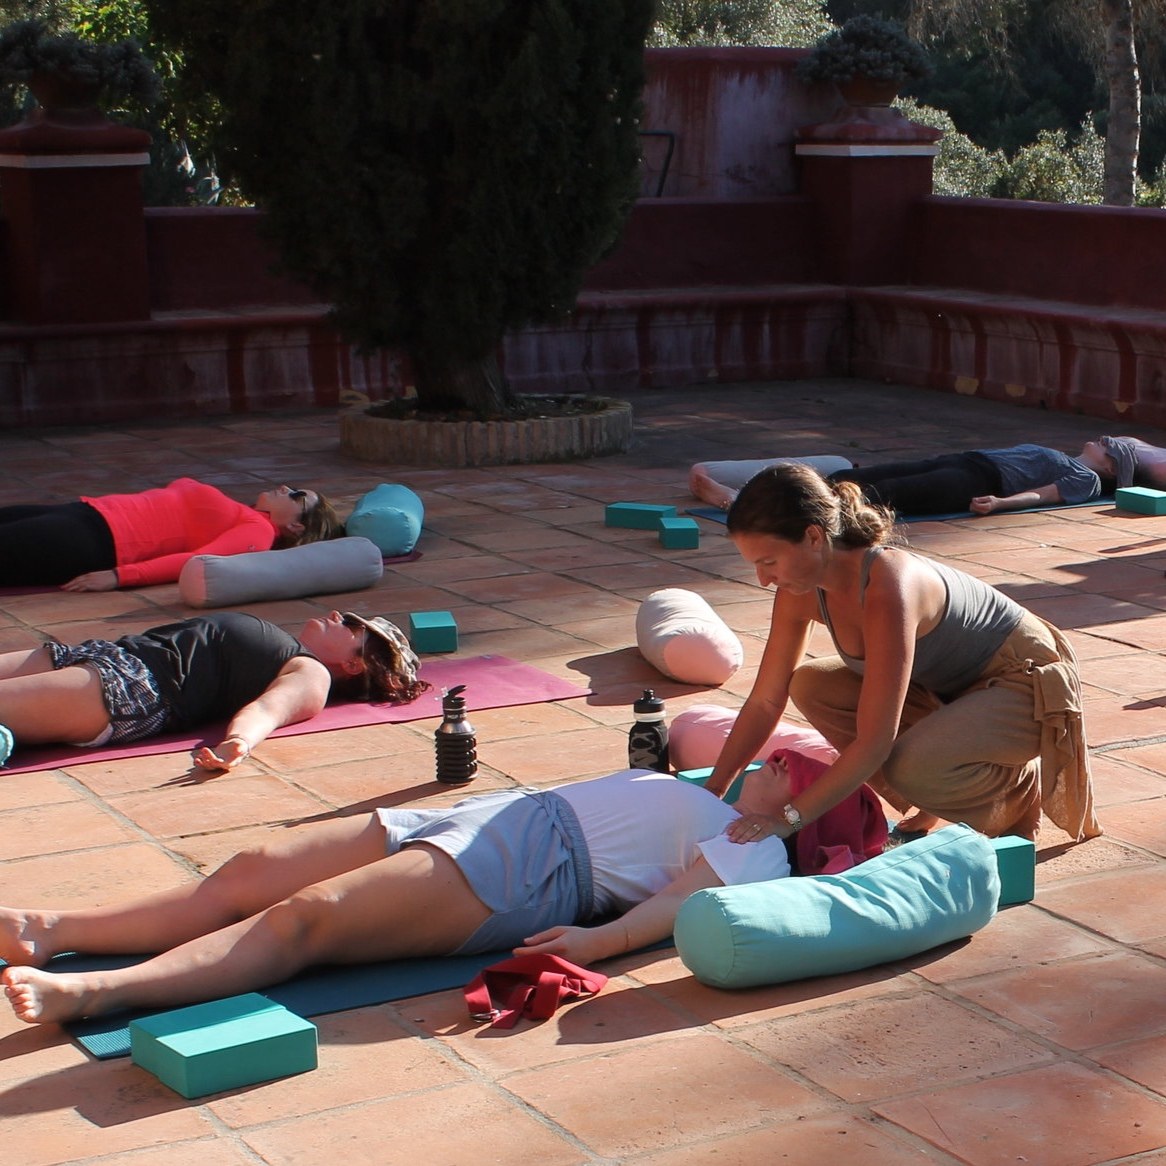 Franny - Yoga Instructor   Franny is a qualified yoga instructor and loves to teach her classes on the outdoor terrace during our boot camps in Spain. Relax and unwind with her relaxed yoga style - and she can teach you some extra deep stretches if you're more advanced.